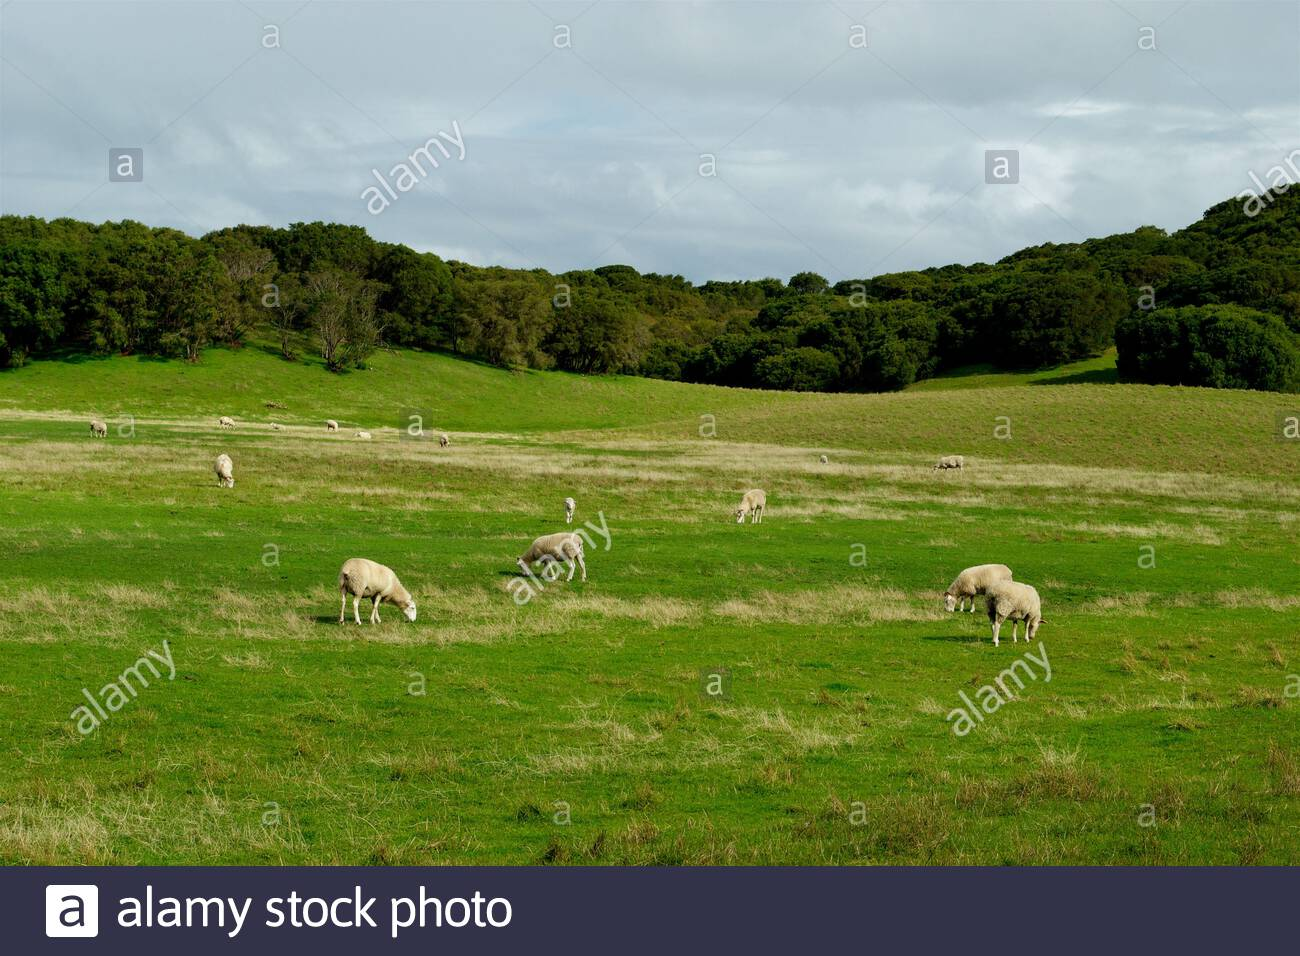 sheep-grazing-in-a-green-undulating-paddock-in-south-west-western-australia-2BTEFEM.jpg